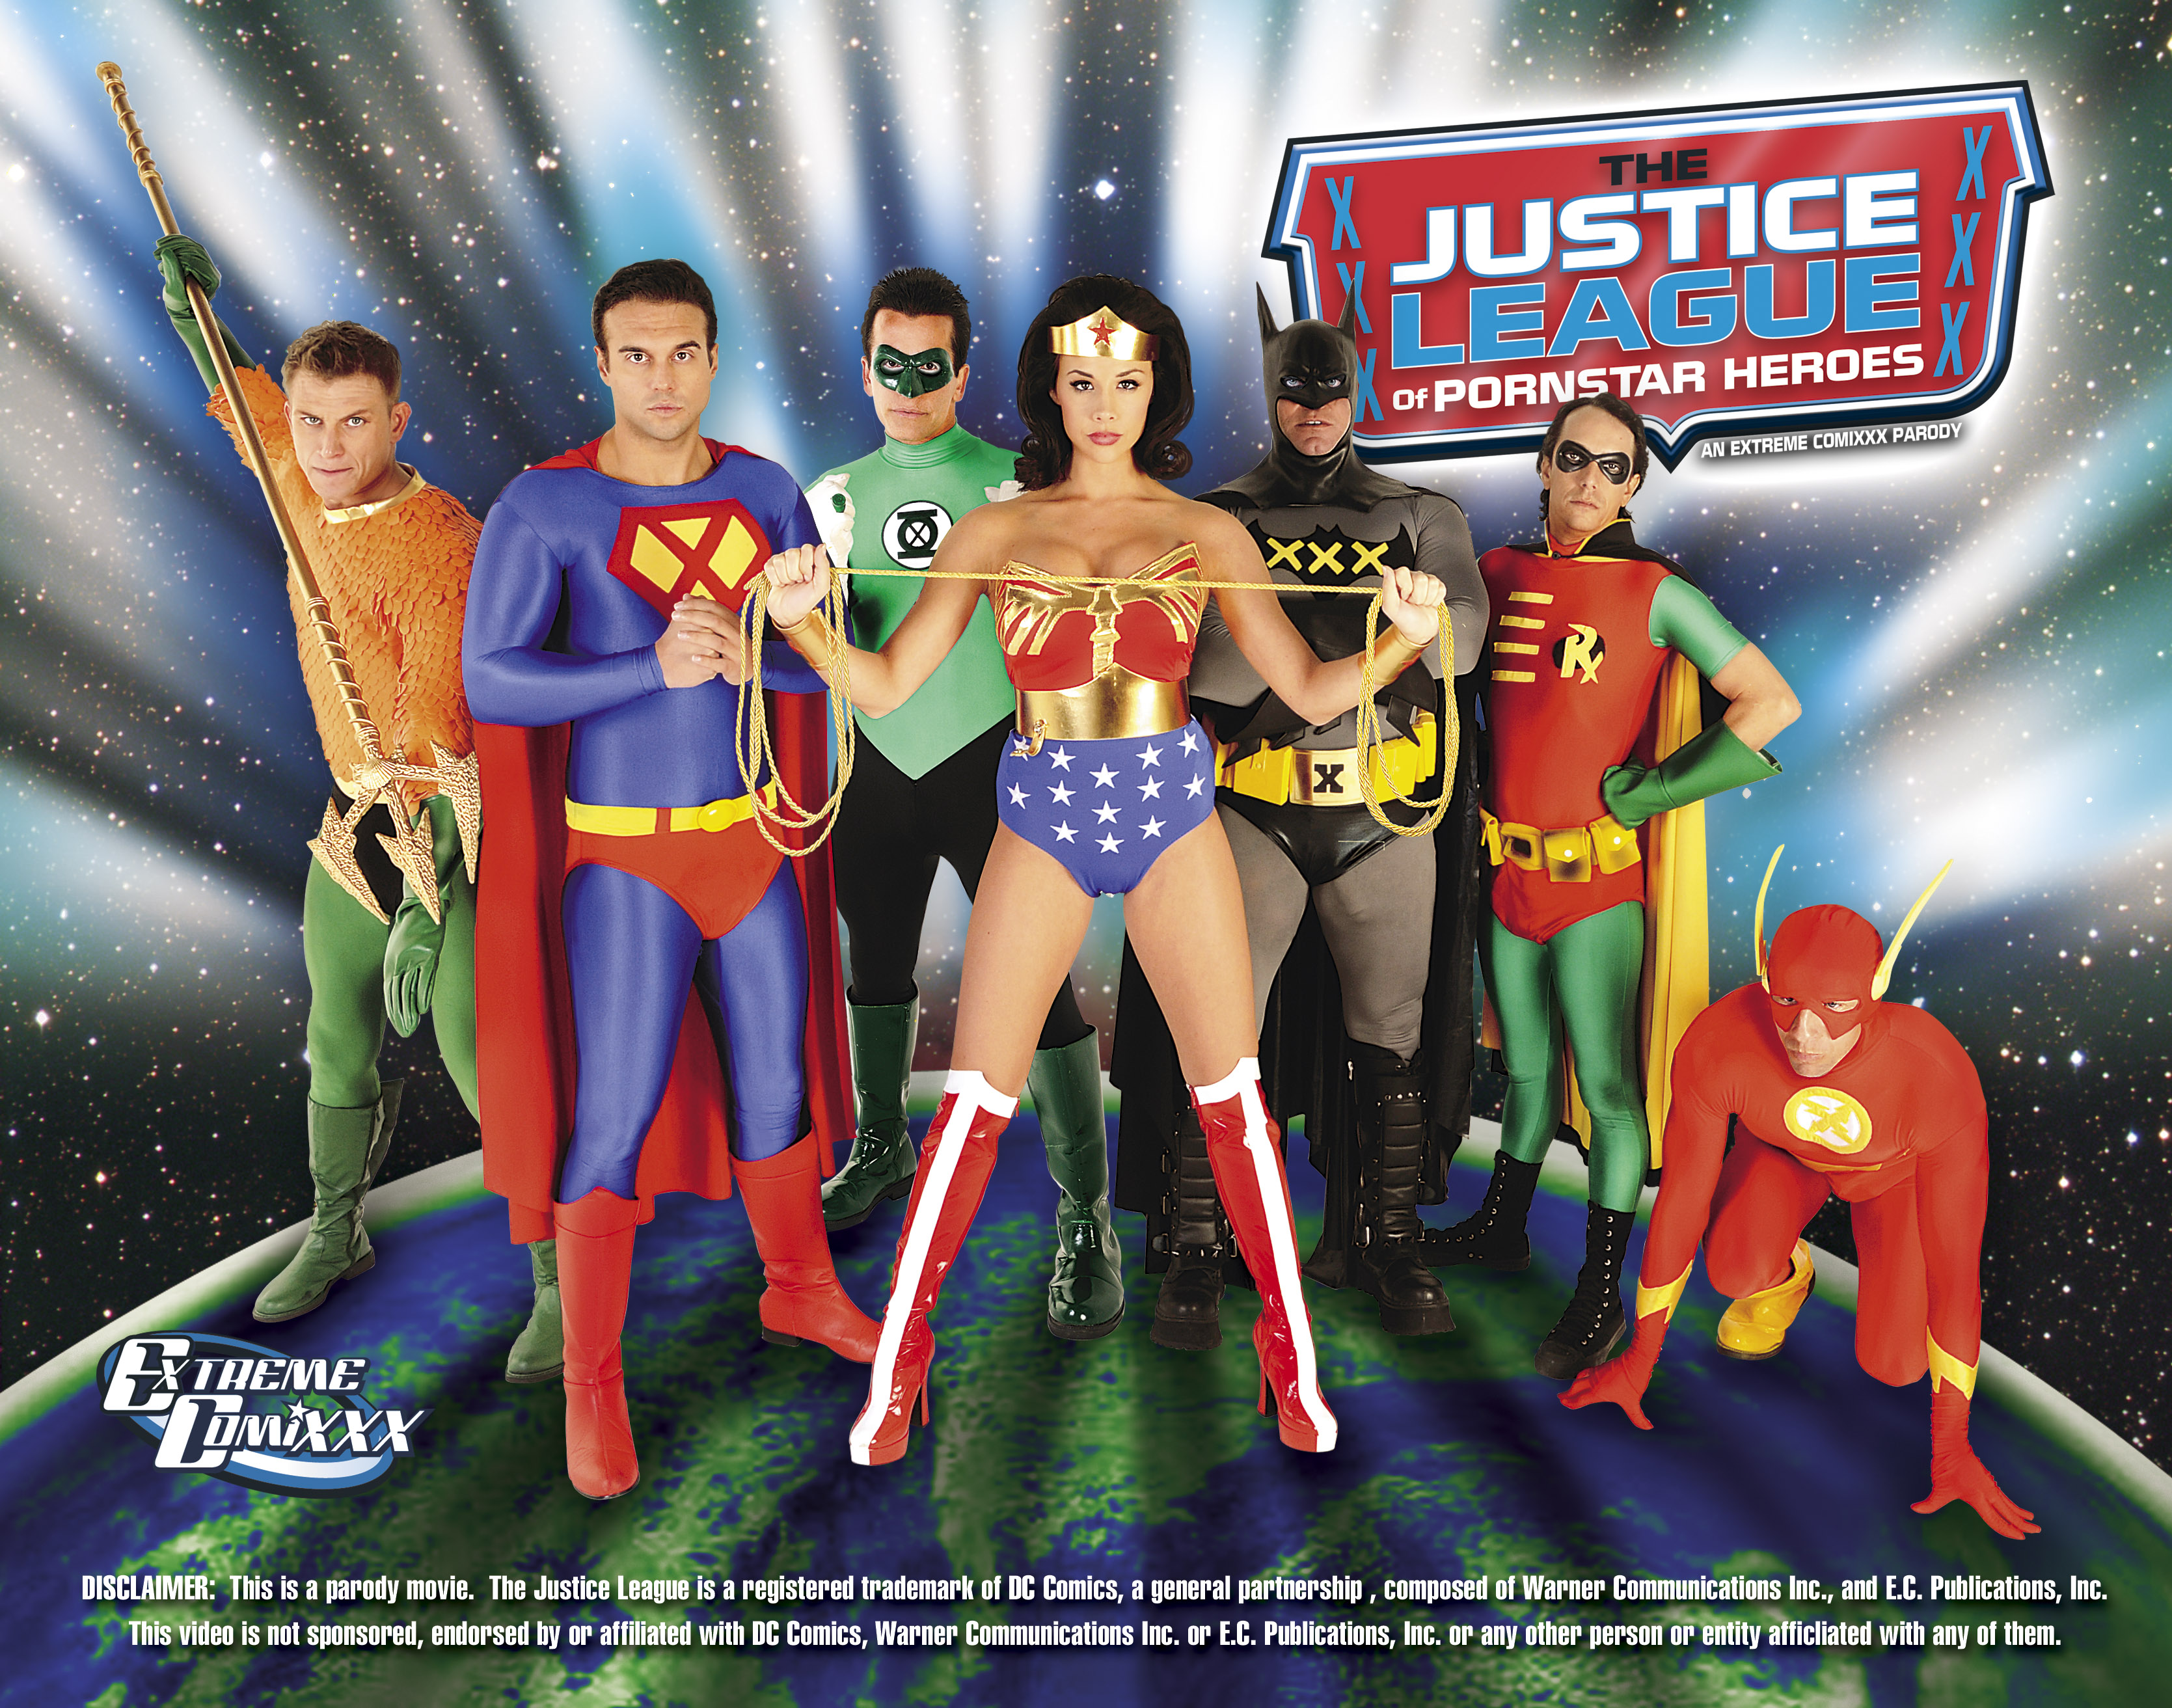 Justice League Porn Parody Star Heroes Out Sold